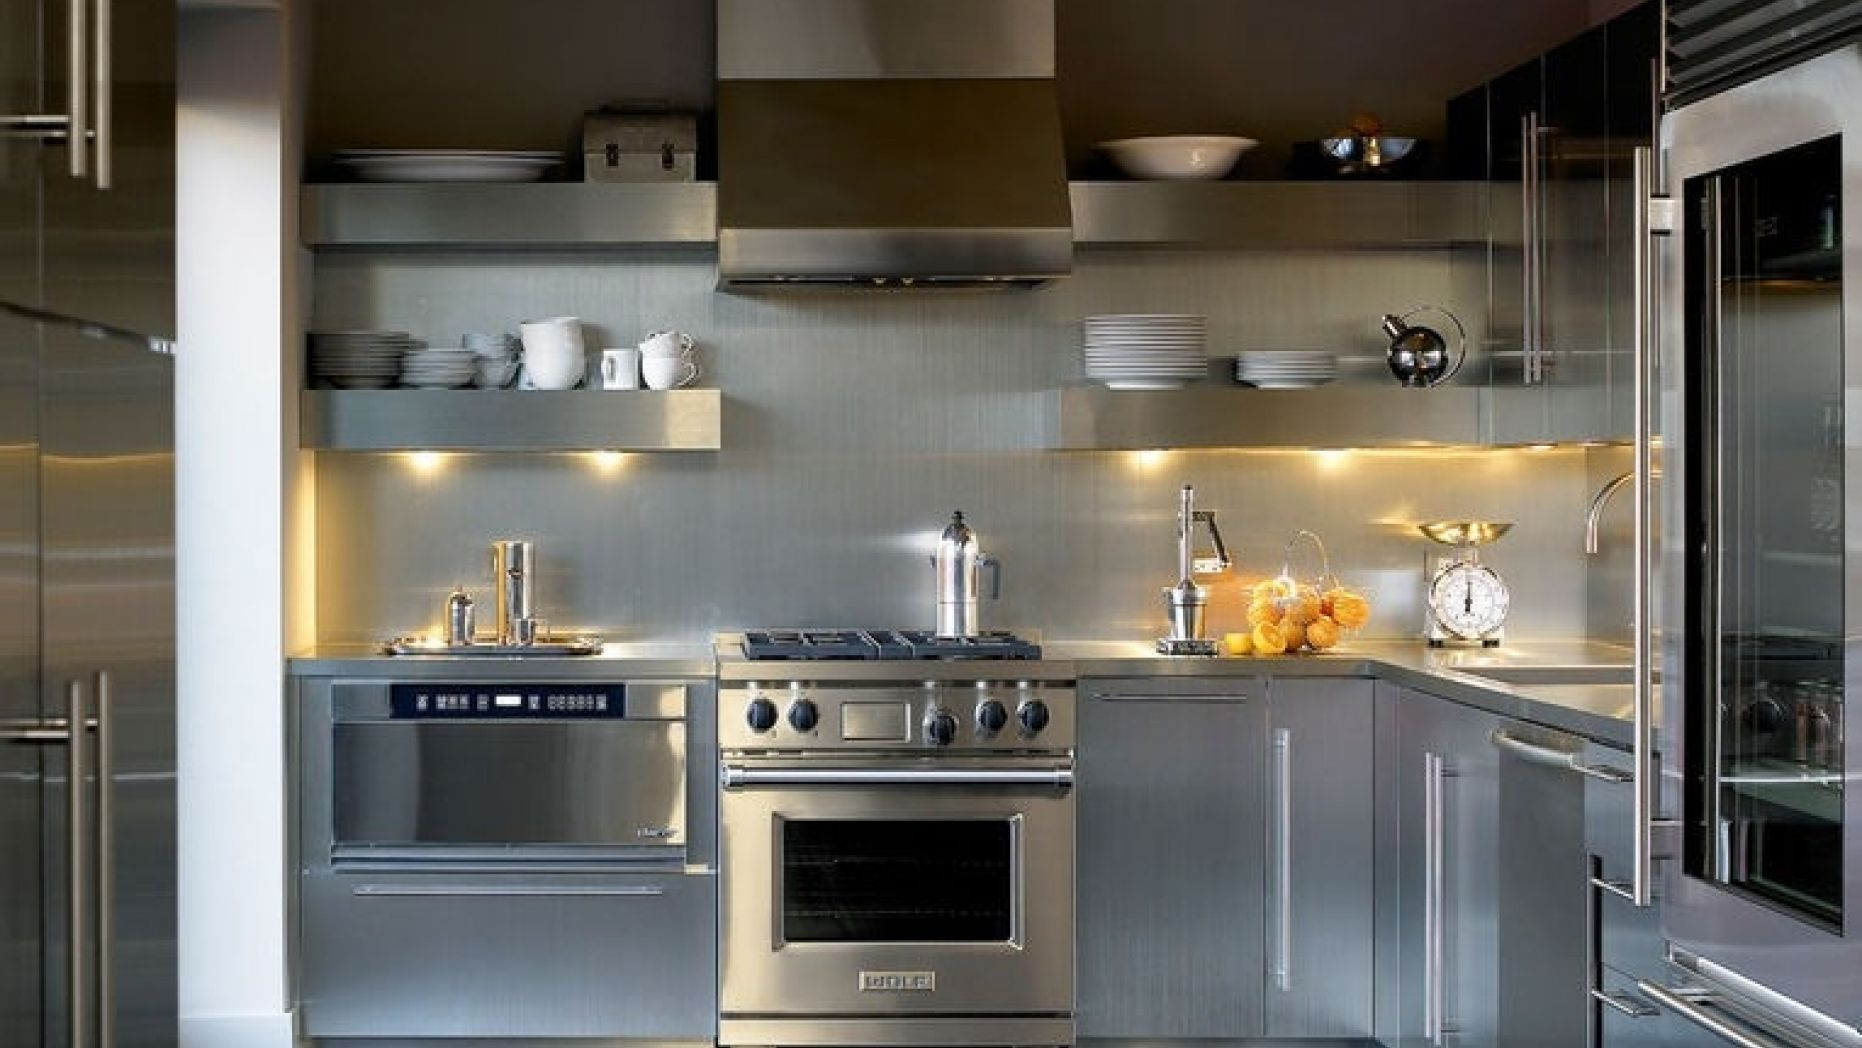 6 tips for cleaning your kitchen's stainless steel appliances and surfaces | Ikea kitchen design ...